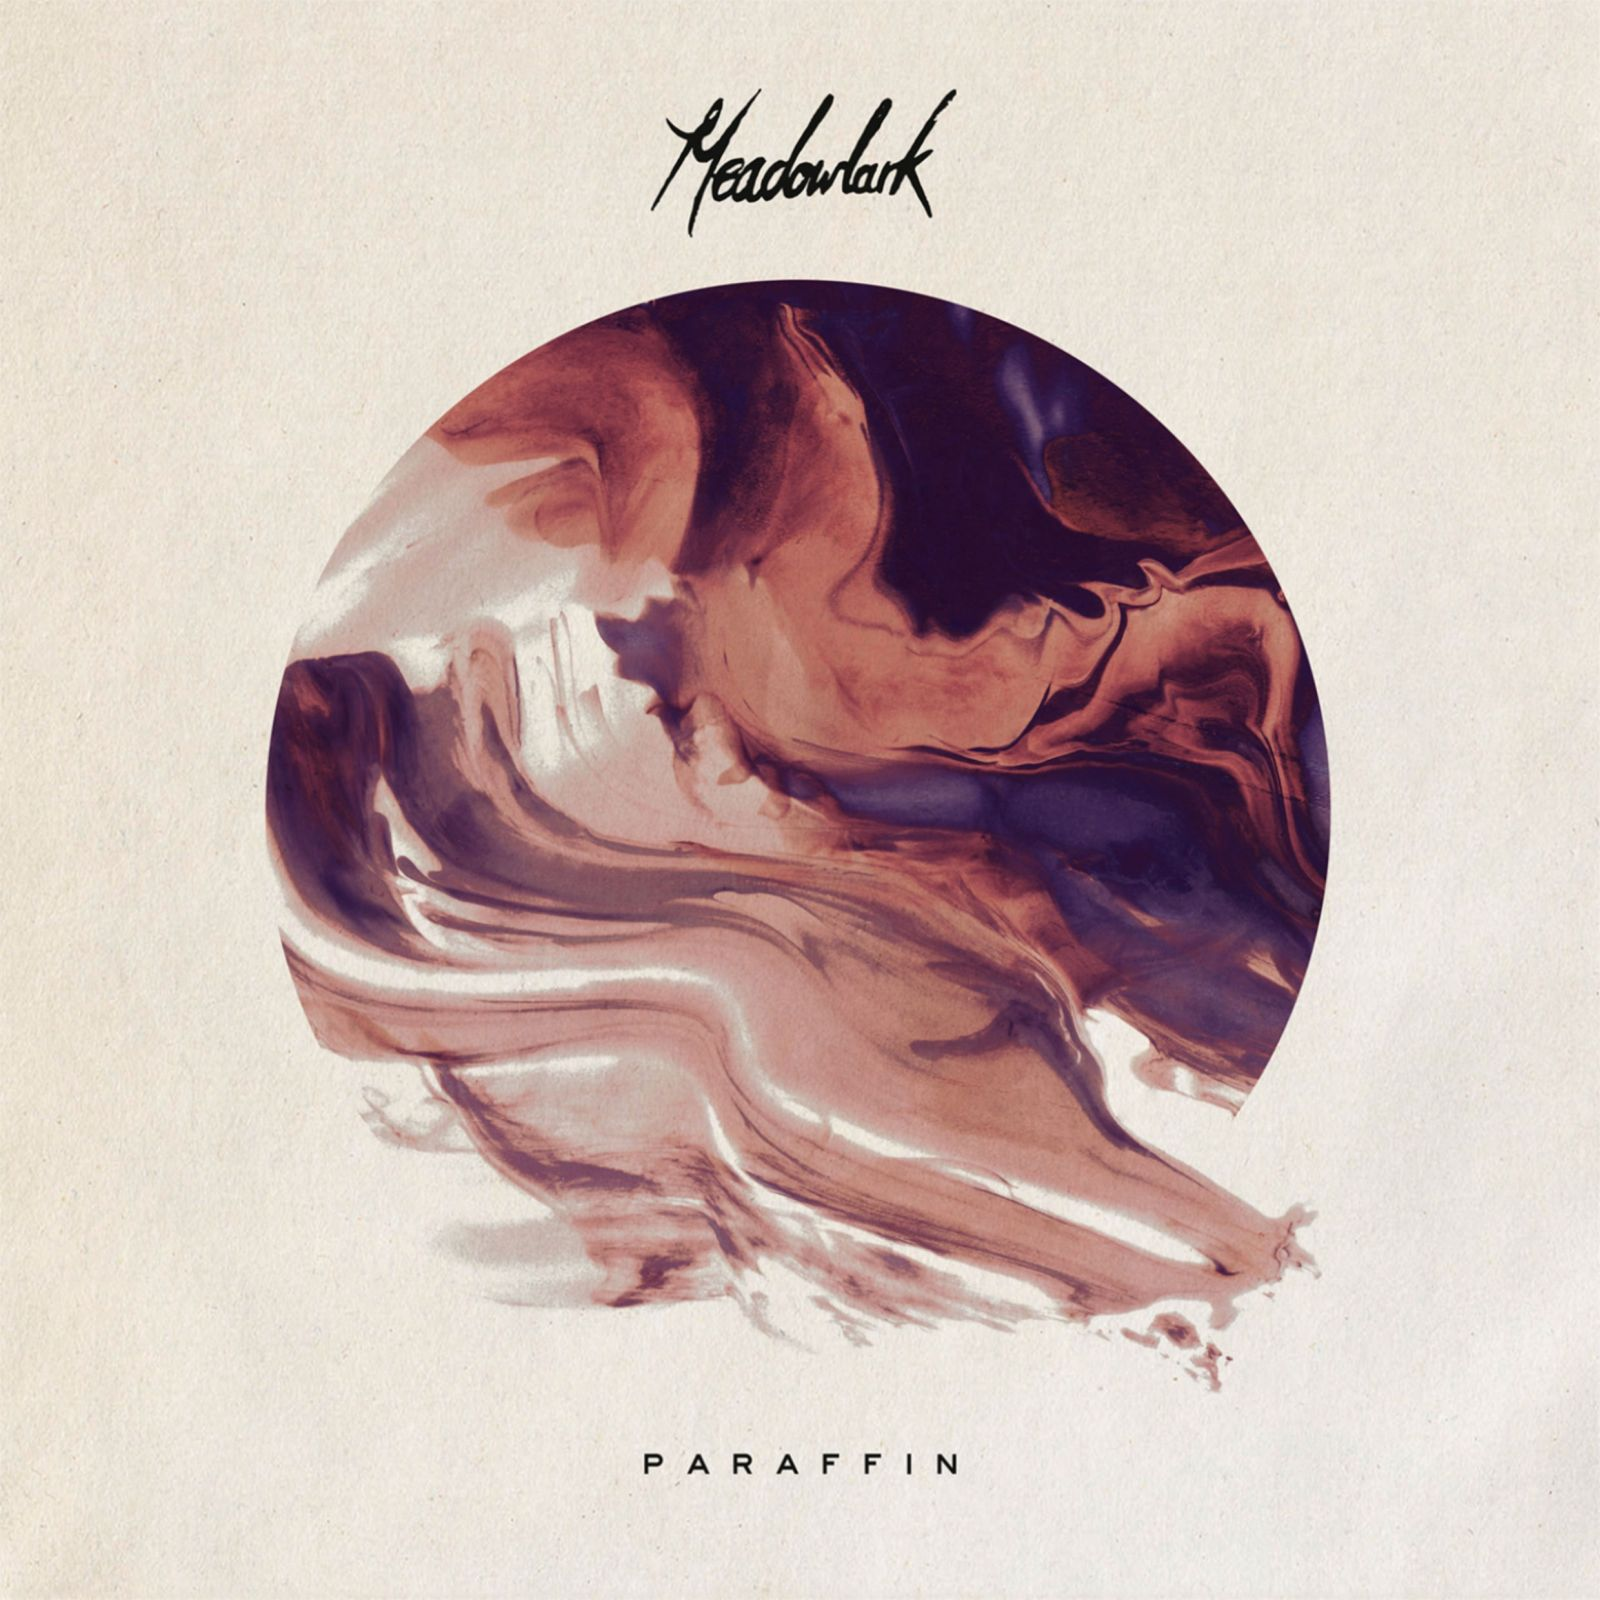 Meadowlark - Paraffin EP